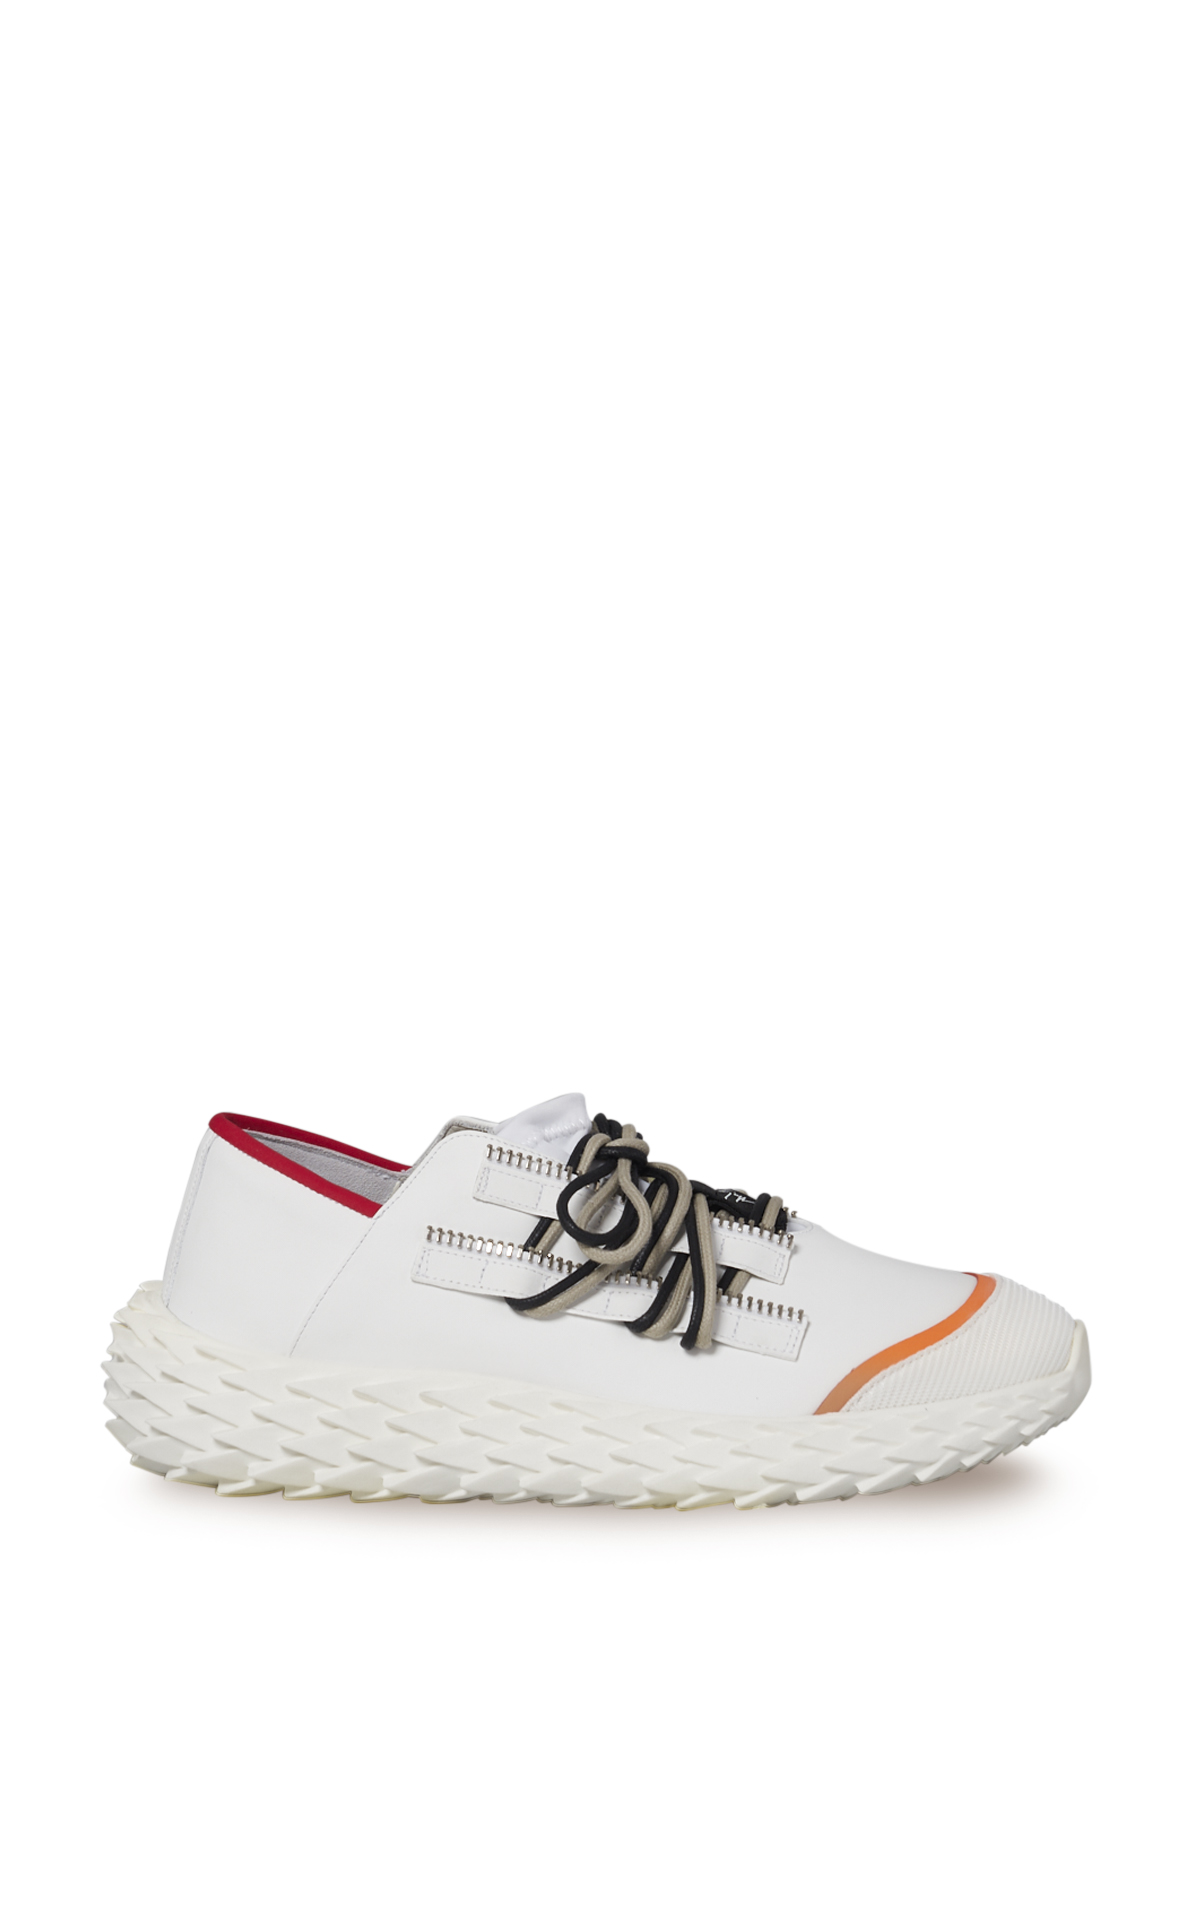 Zanotti Men's white sneakers*